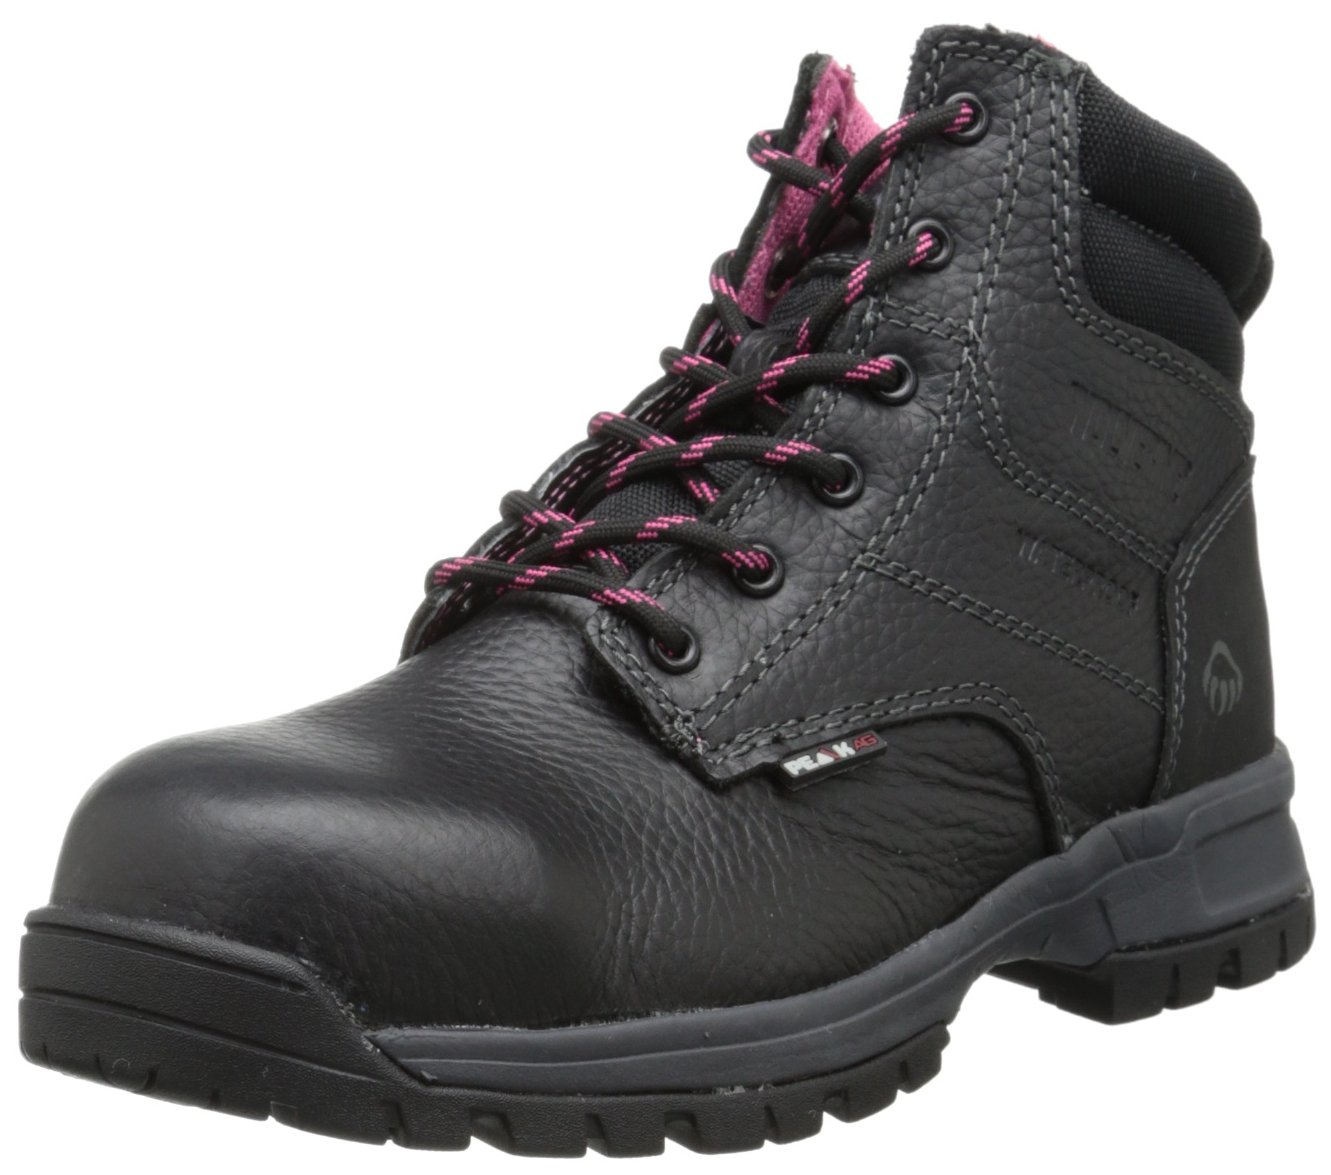 Wolverine Women's Piper Comp Safety Toe Boot,Black,7.5 W US